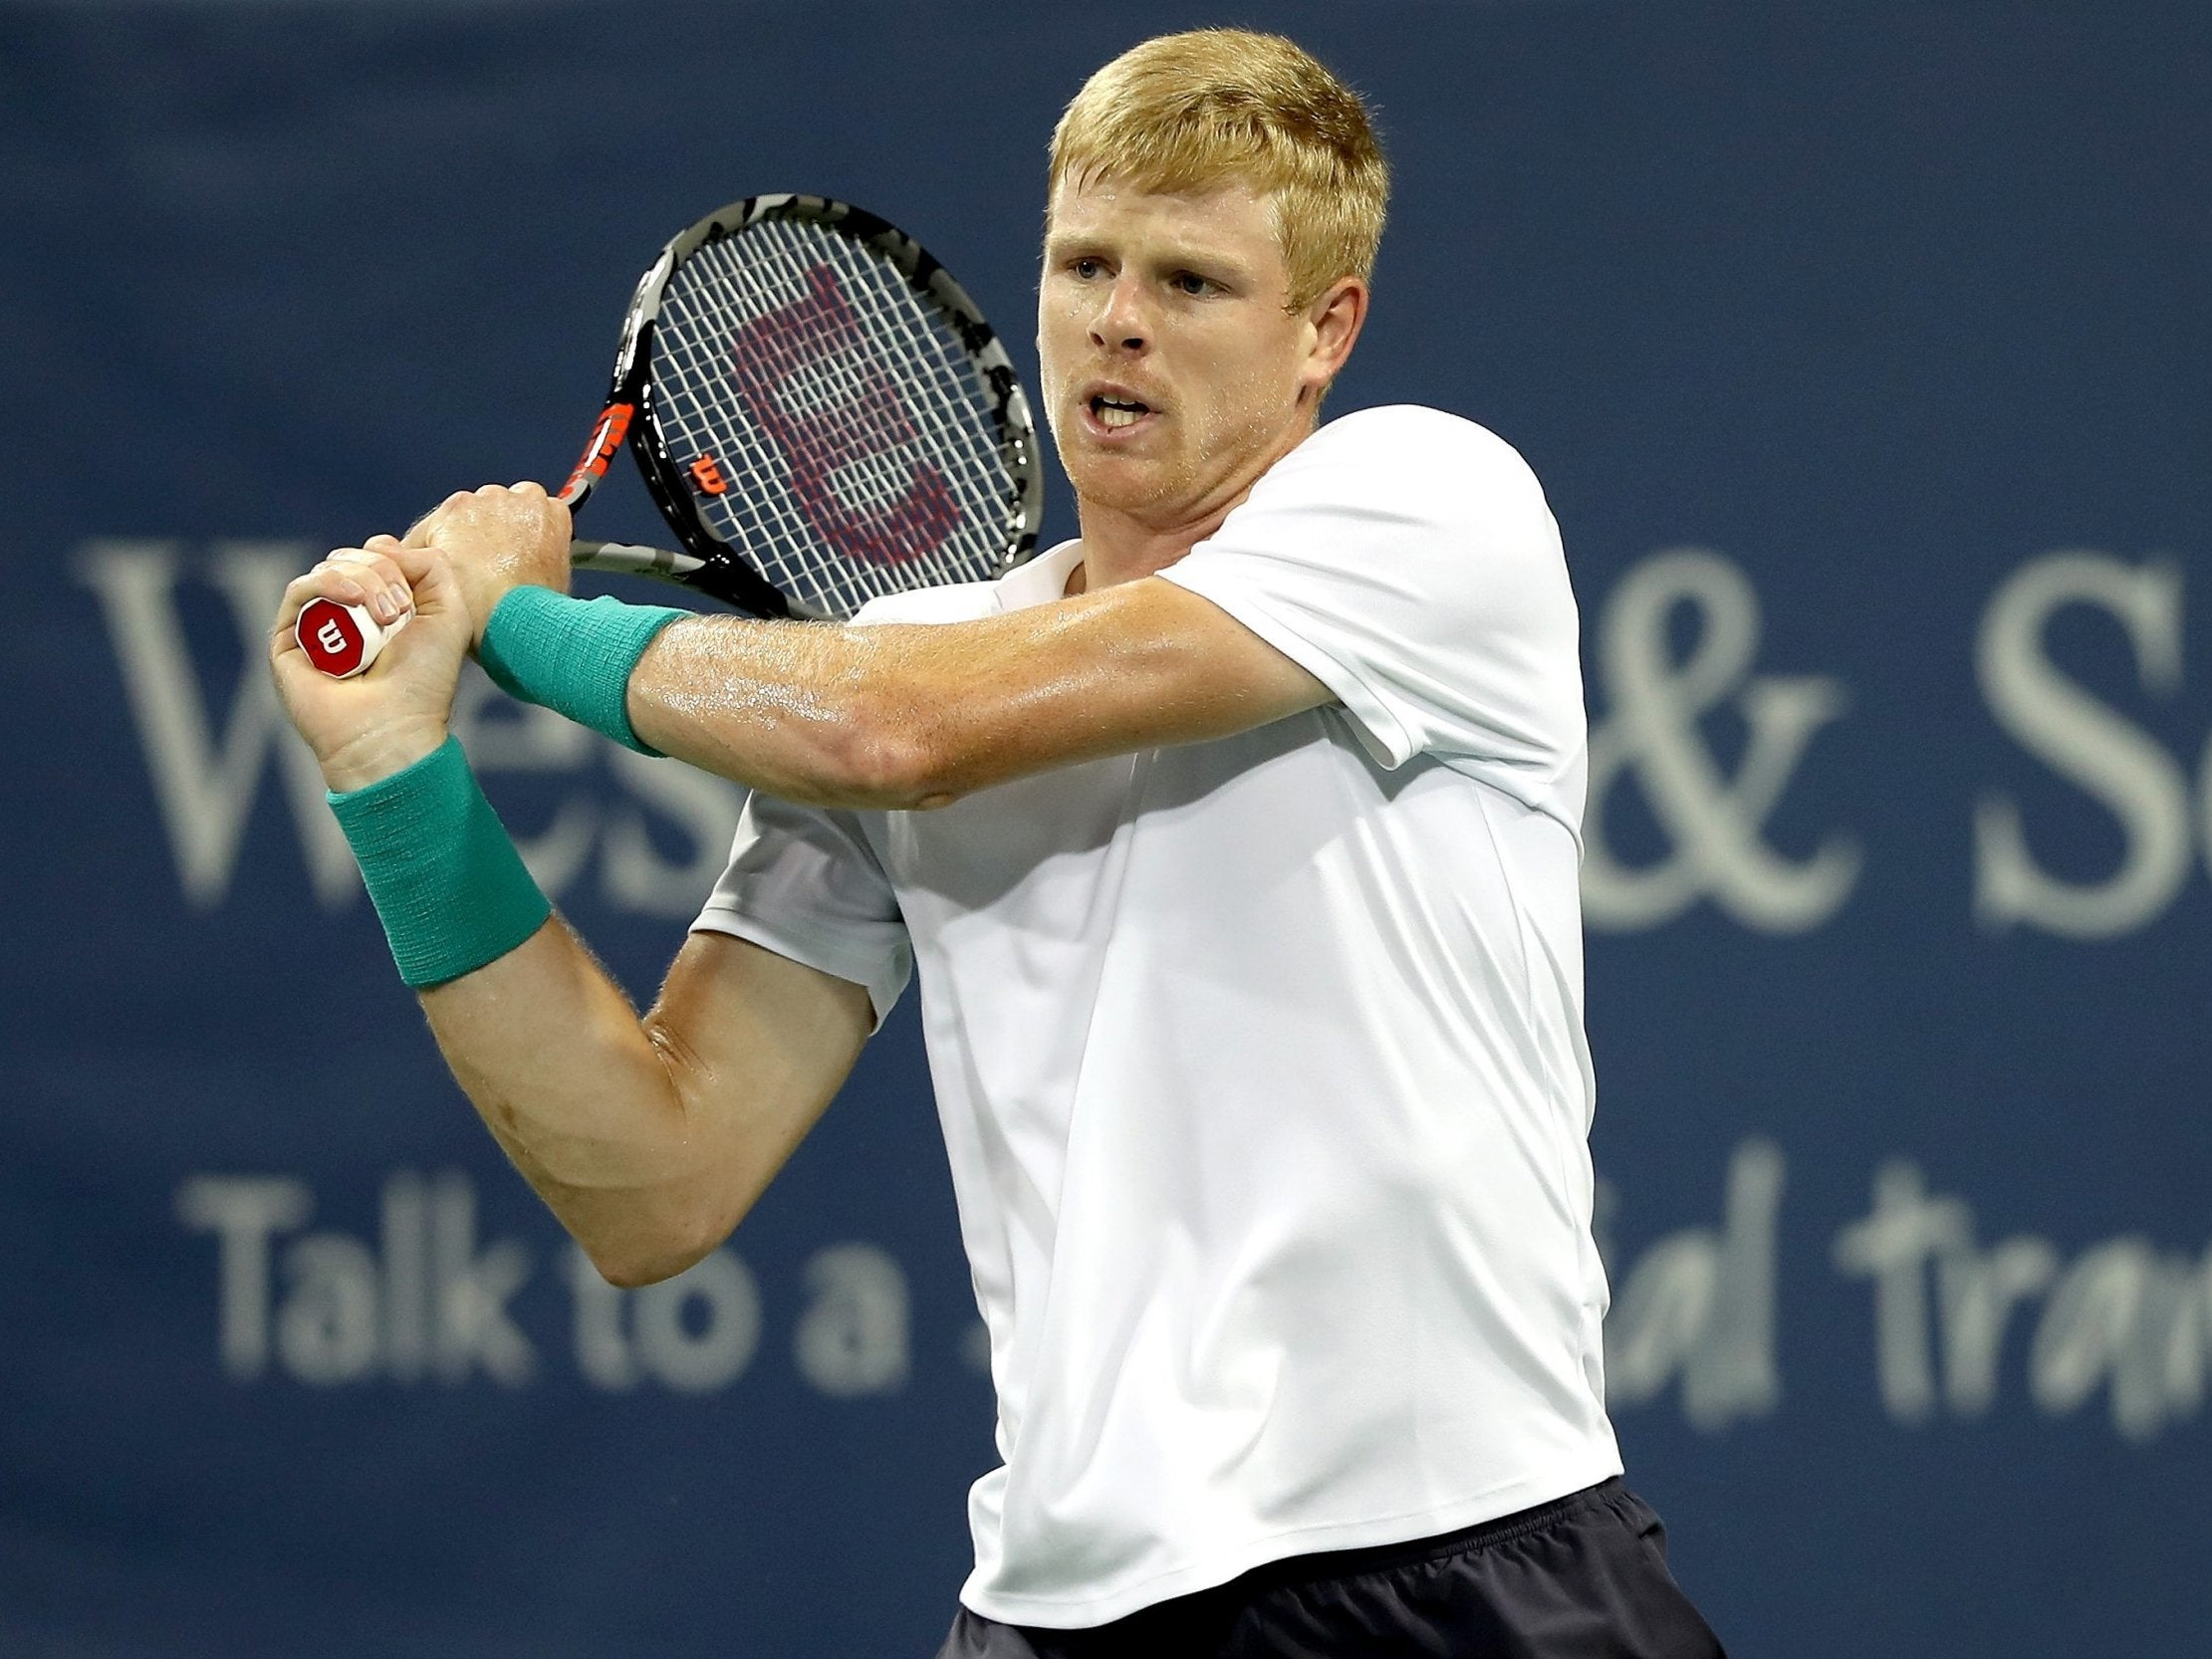 Kyle Edmund Joins Andy Murray In Early Elimination From Cincinnati Open After Defeat By Denis Shapovalov The Independent